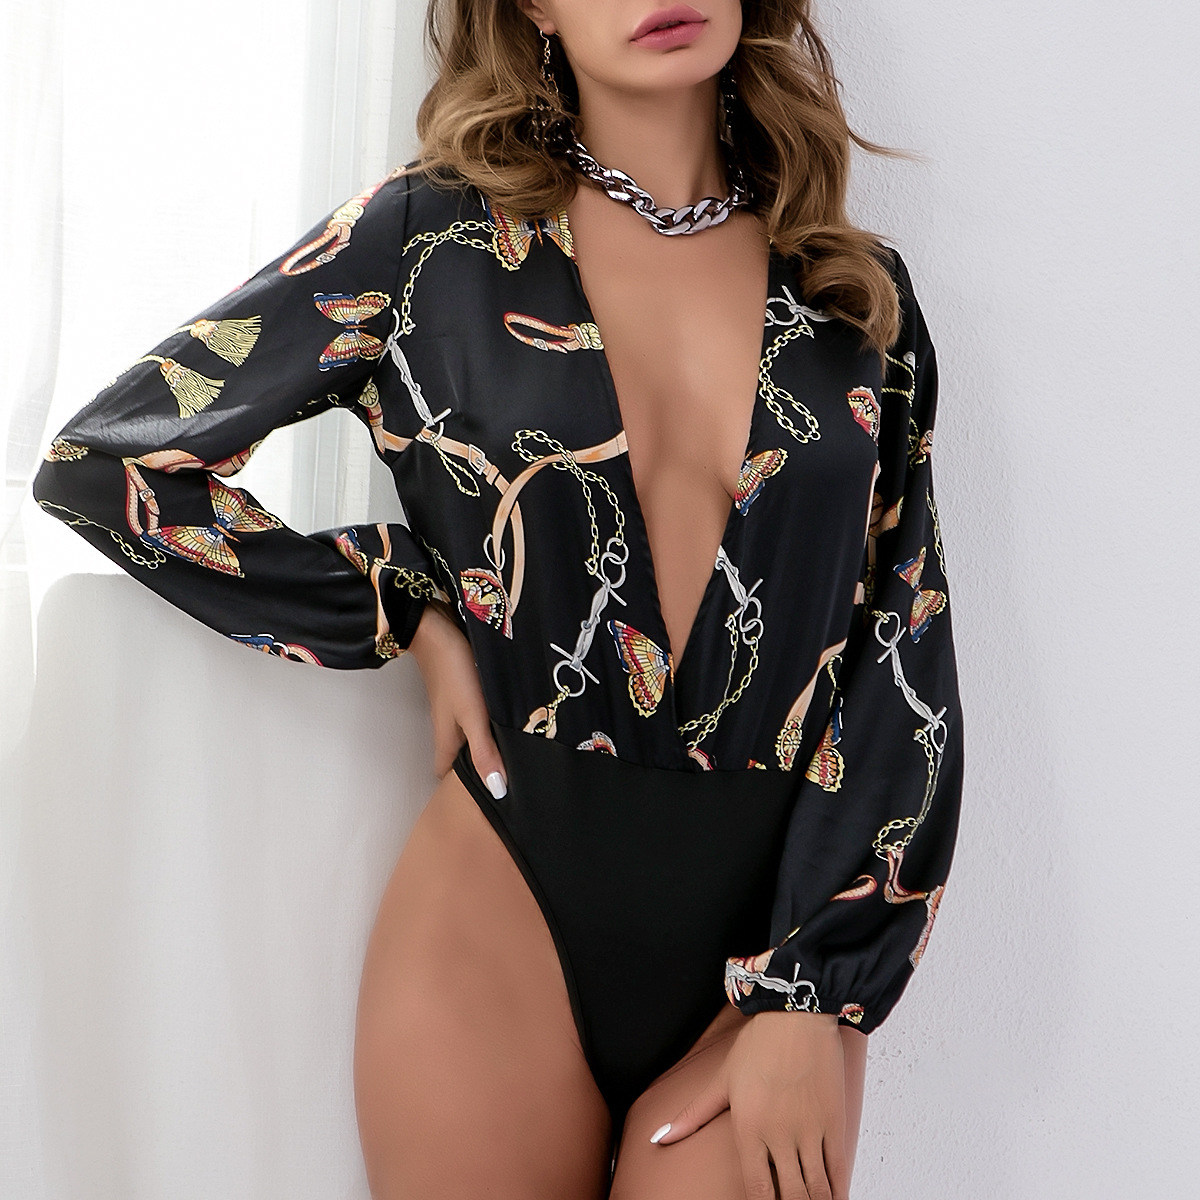 Bodysuits Disciplined Black Body Mujer Women Bodysuit Sexy Flower Butterfly Print Long Sleeve Jumpsuit Deep V Neck Plunge Sheath Romper Wp5796j